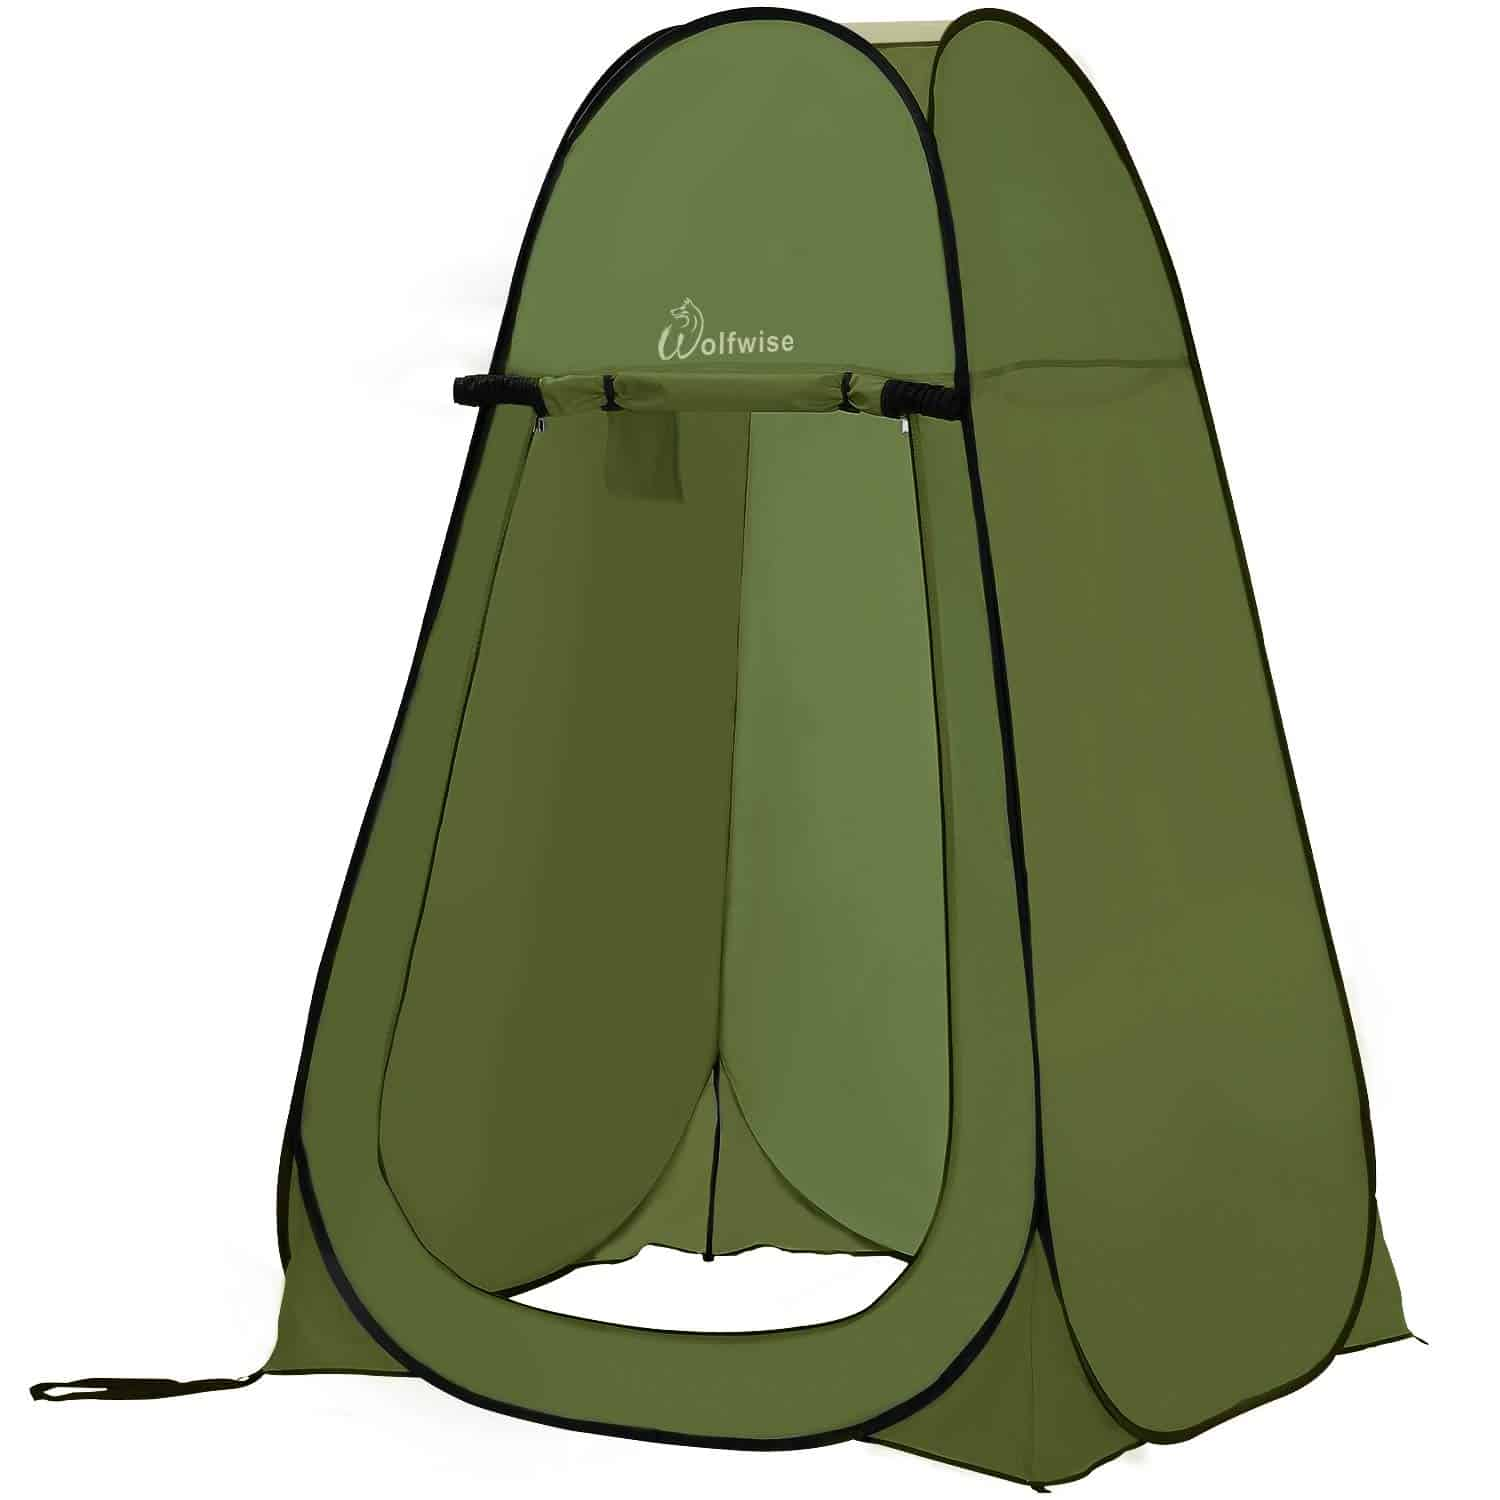 WolfWise Pop Up Sun Shelter Shower Tent